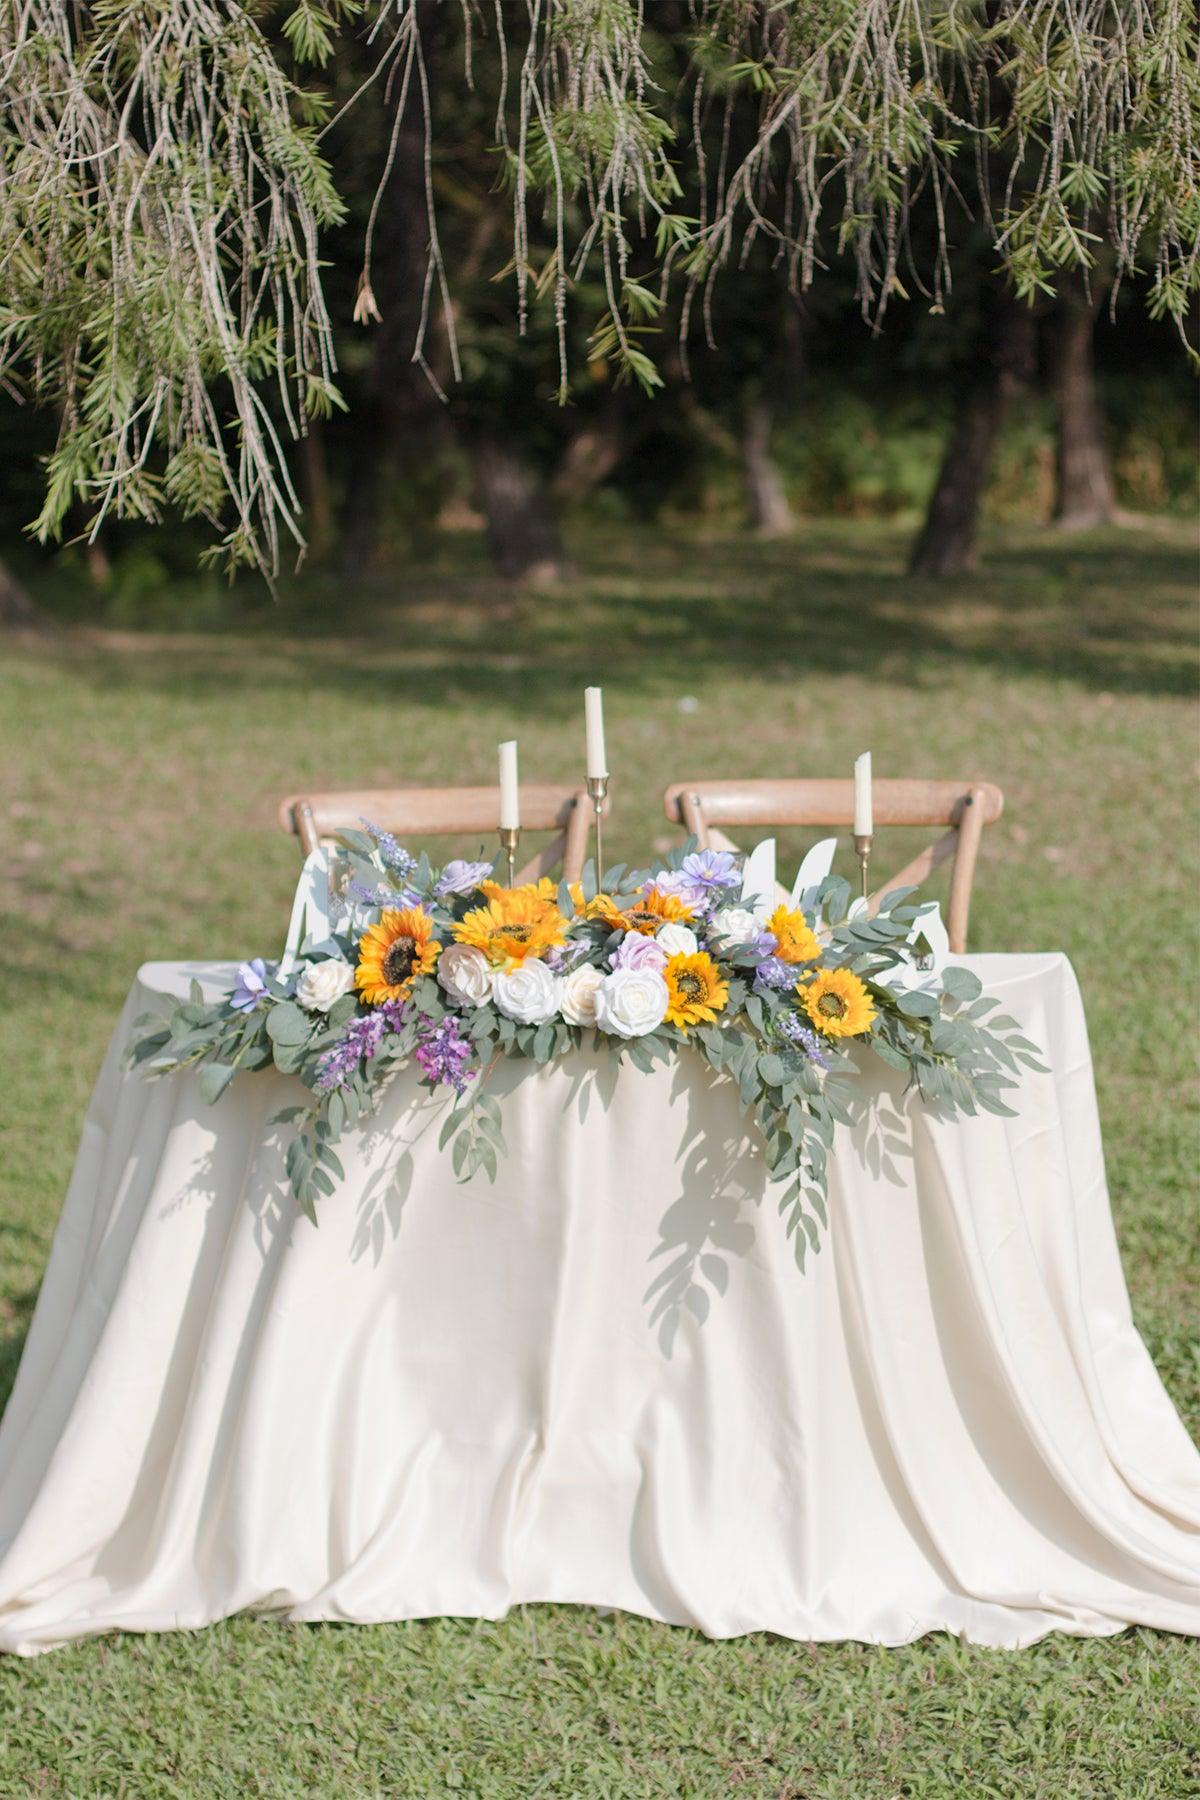 Flower Swag and Tablecloth for Sweetheart/Head Table - Sunflowers & Lavender